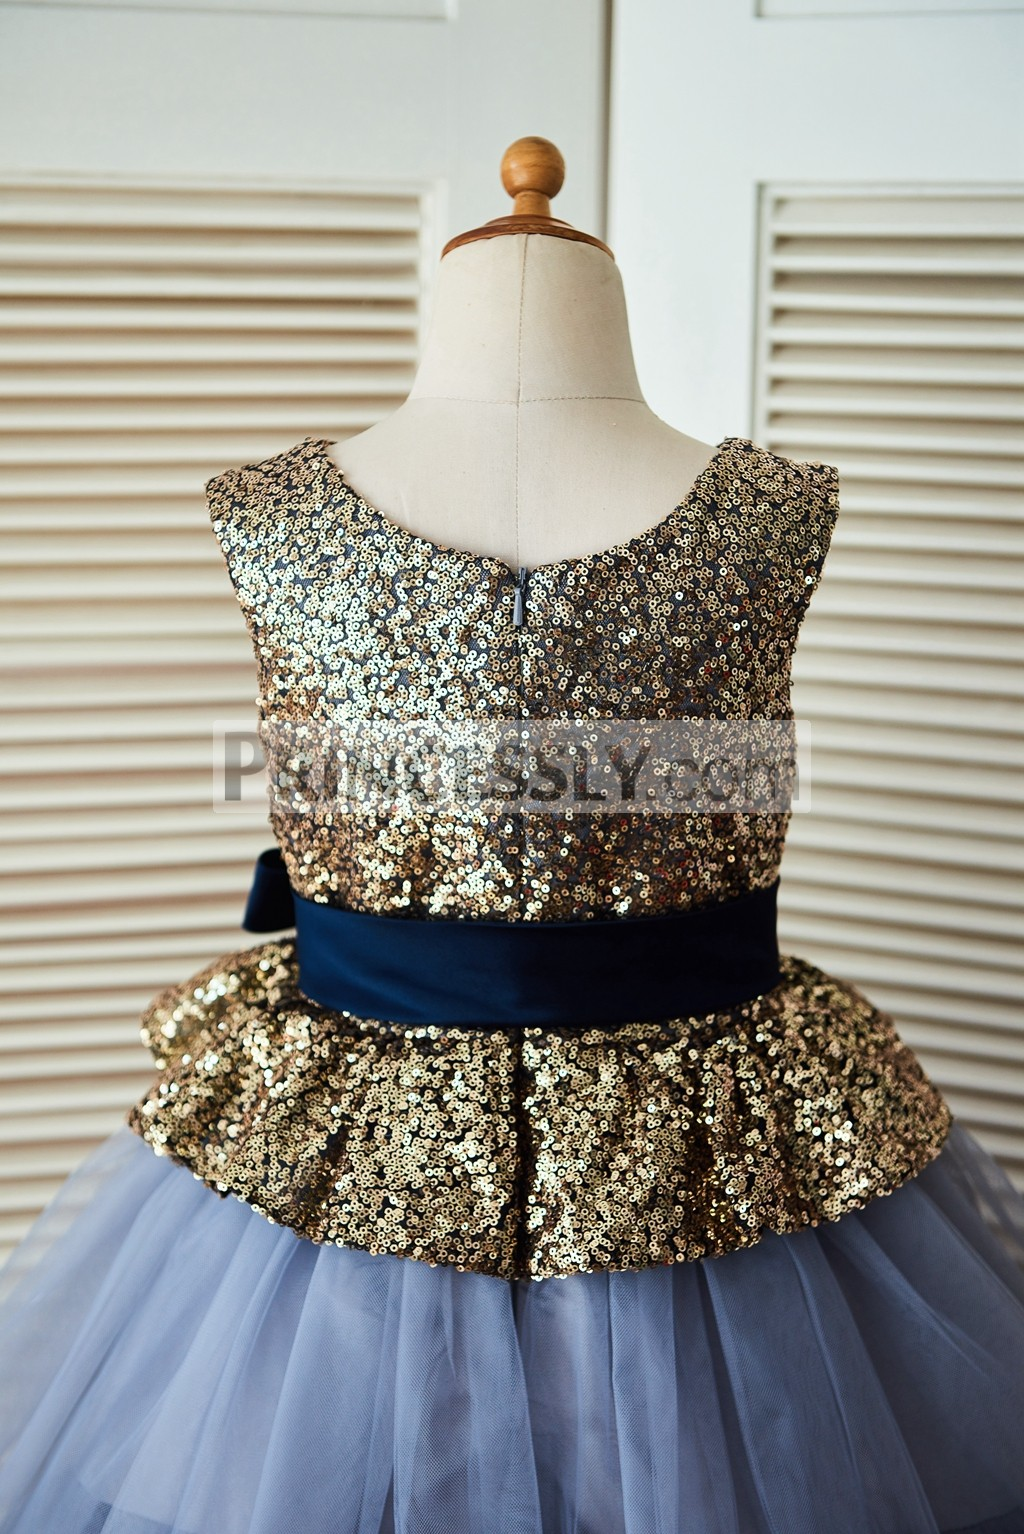 84ce34b12ba ... tulle cupcake wedding baby girl dress. Scoop neckline and sleeveless gold  sequin bodice with navy blue sash. Gold sequin bodice with zipper back